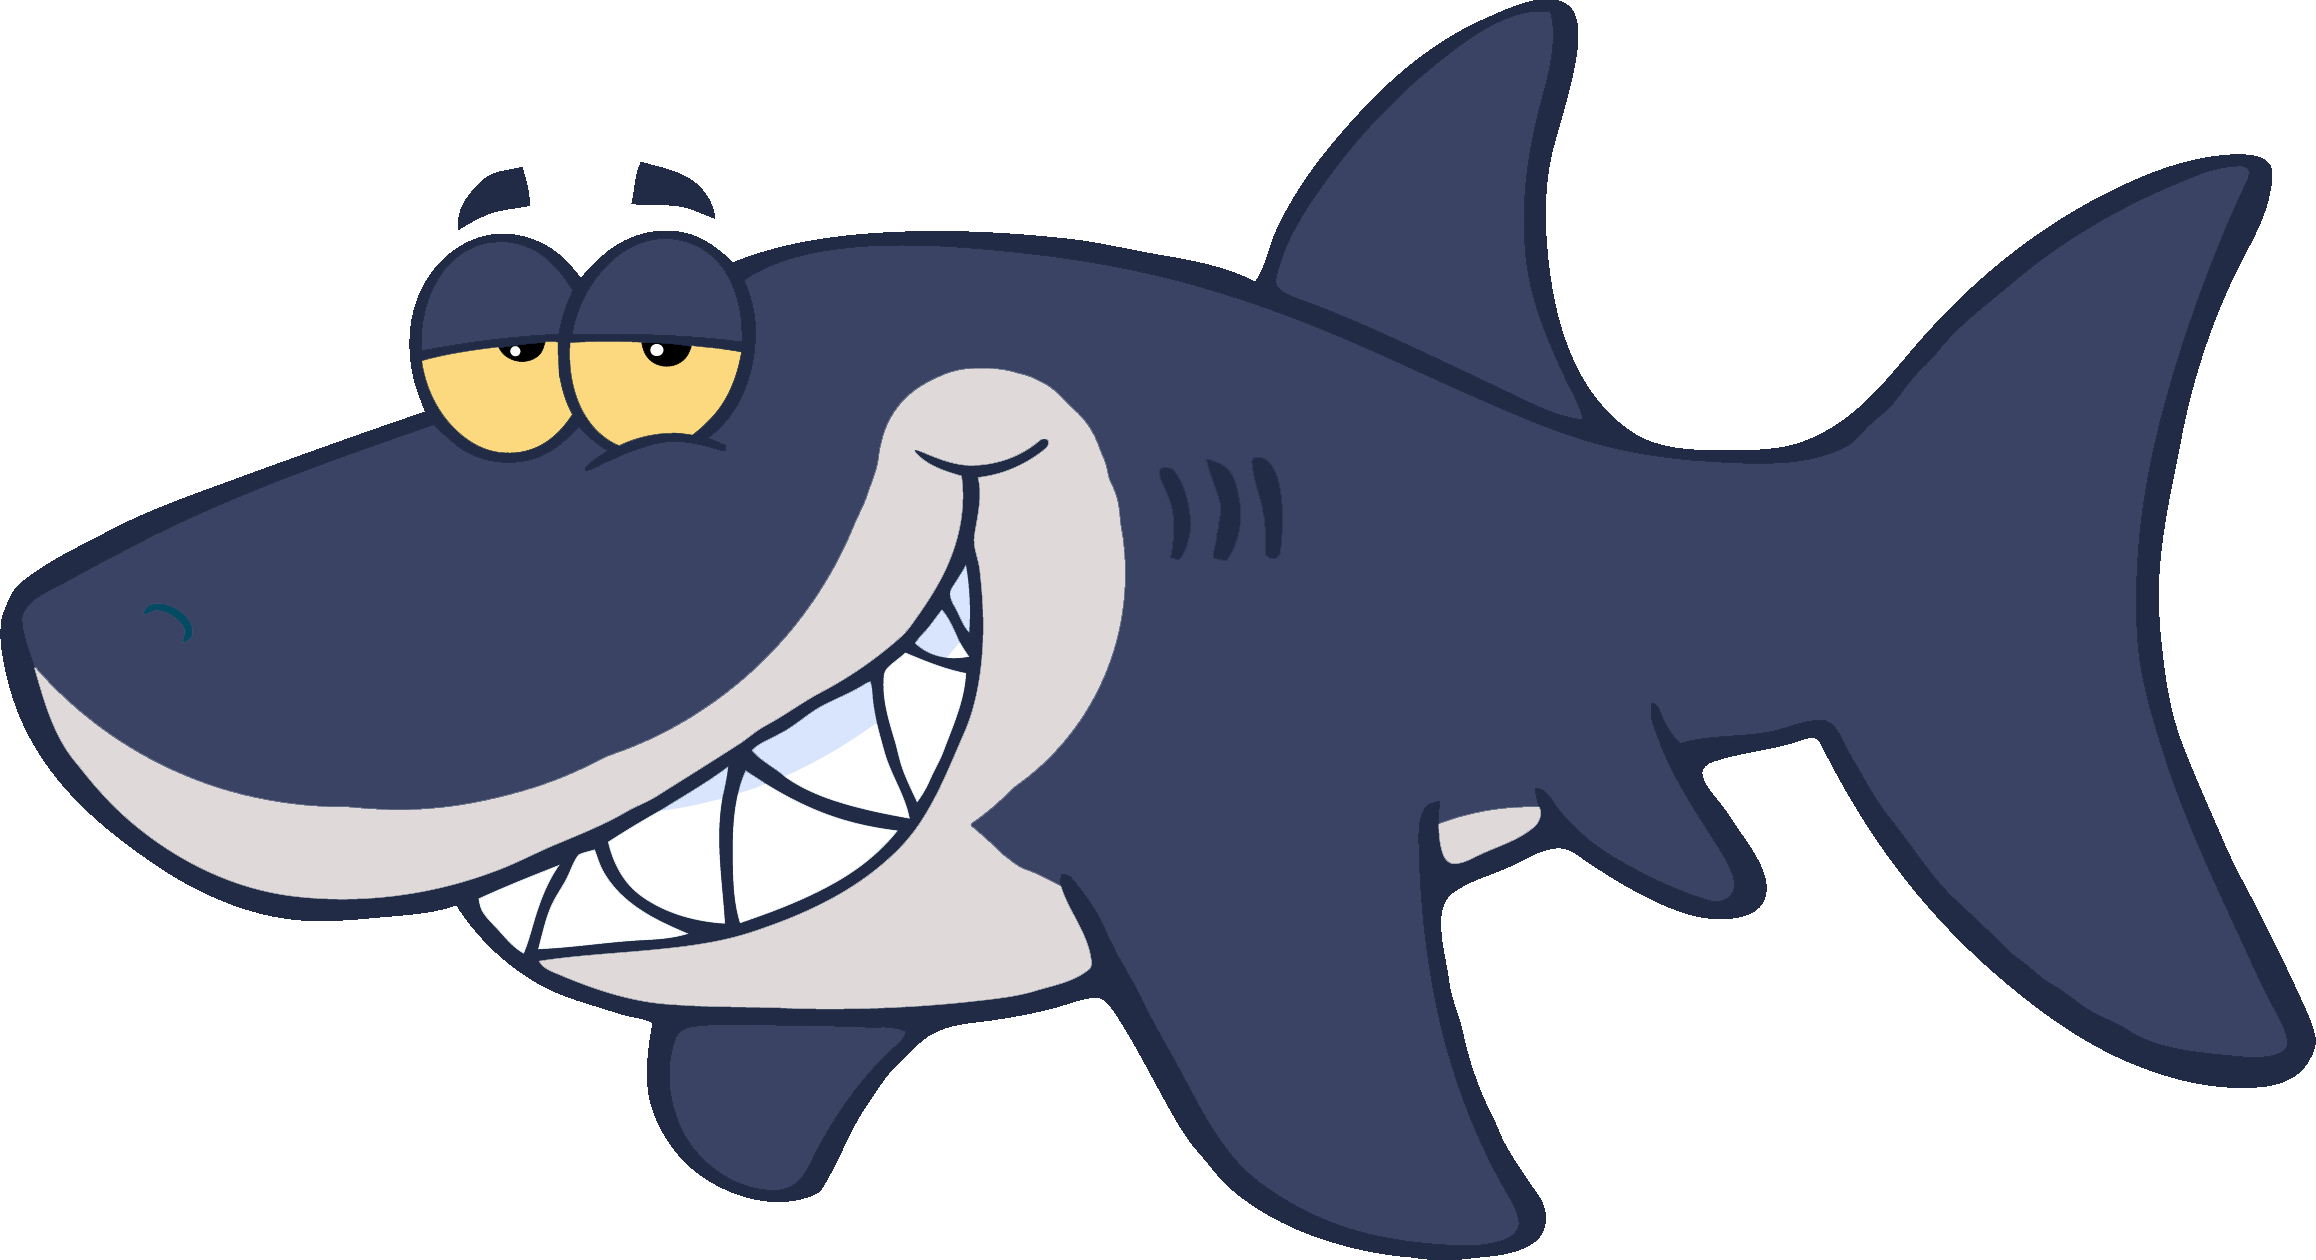 Clipart shark tail, Clipart shark tail Transparent FREE for.